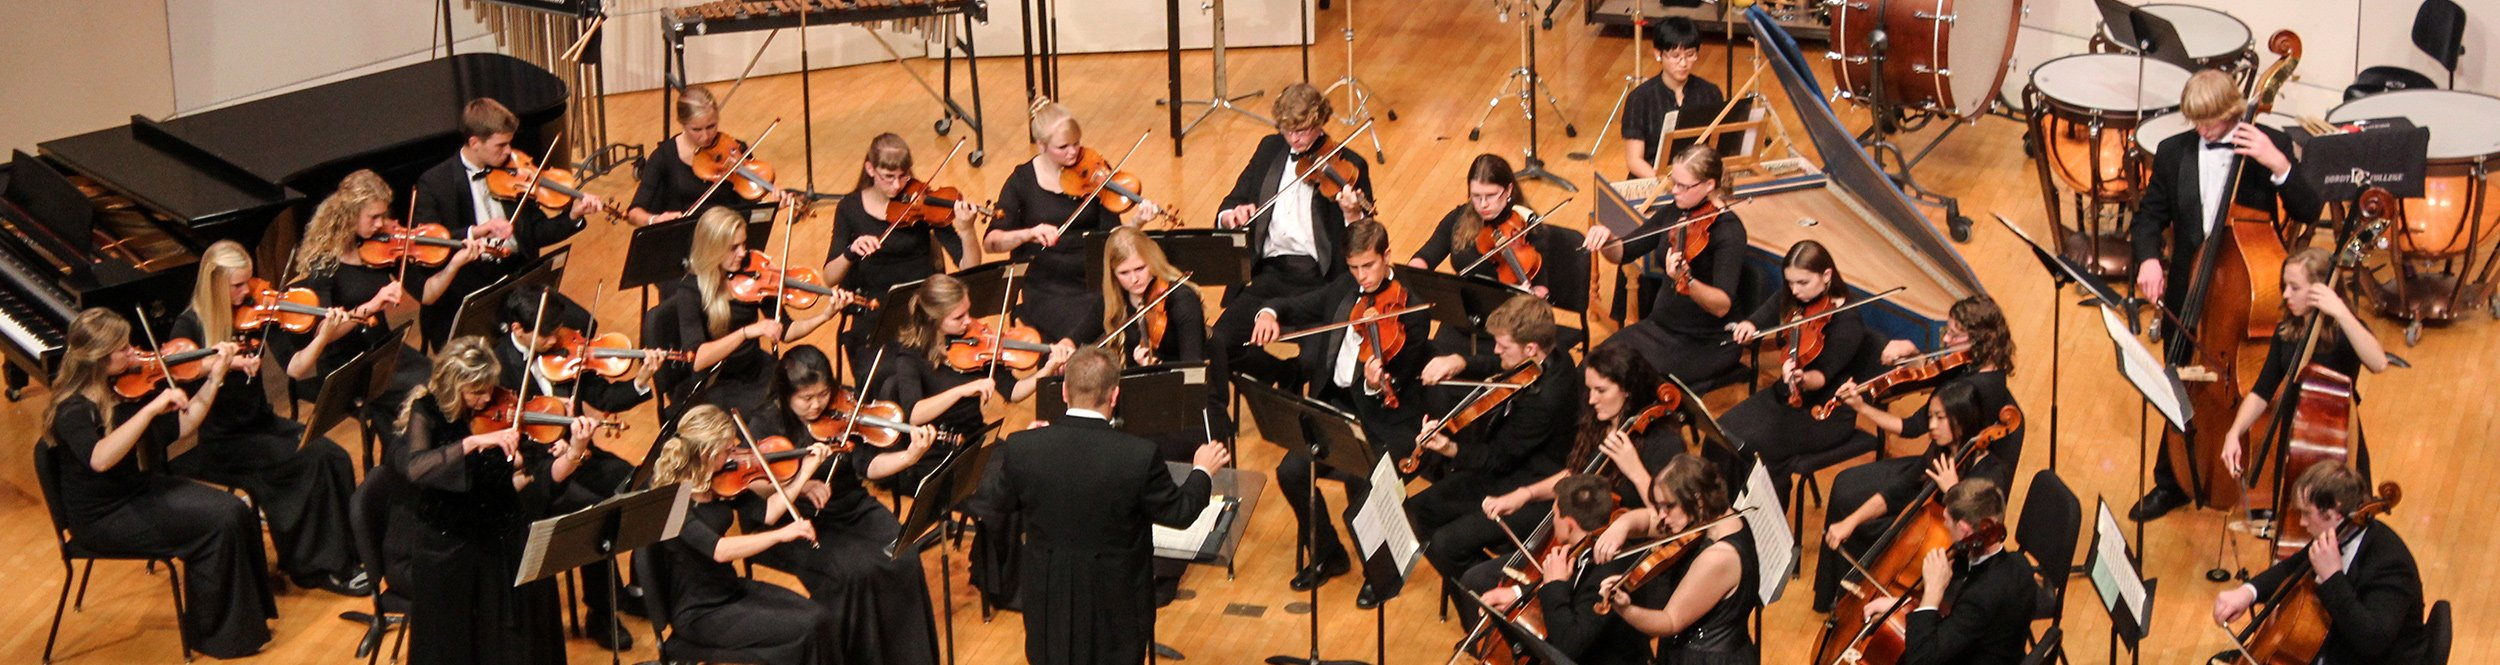 A string orchestra plays on stage.